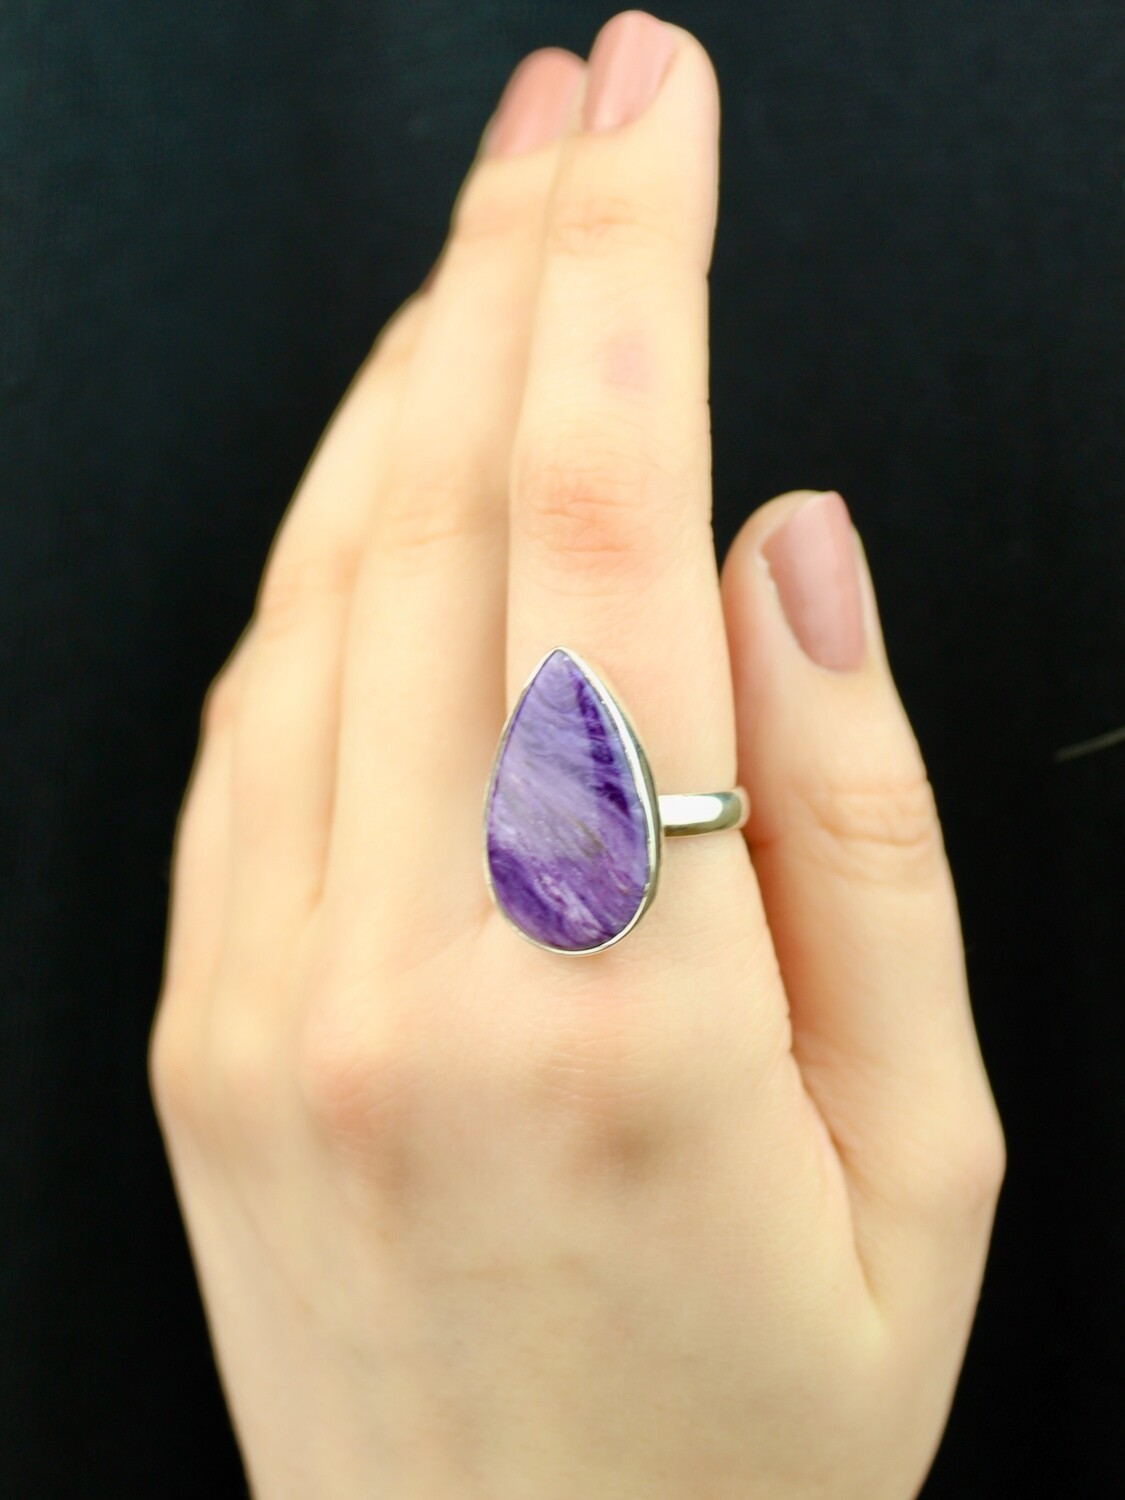 SIZE 8 - Sterling Silver Charoite Teardrop Ring - RIG8101